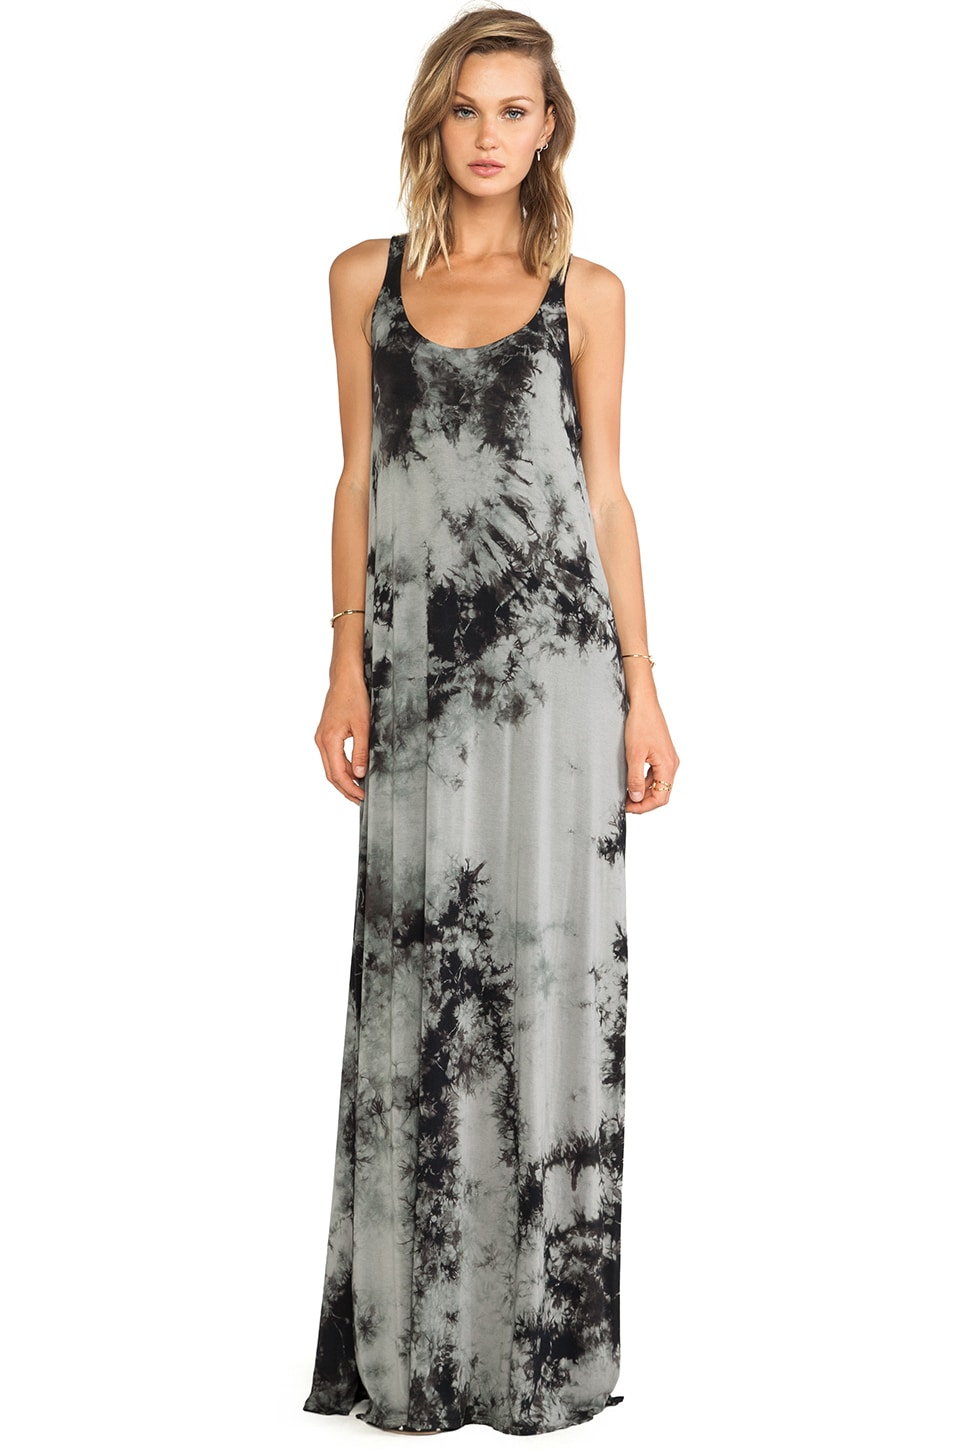 Chaser Summer Festival Maxi Tank Dress in Ink Dot